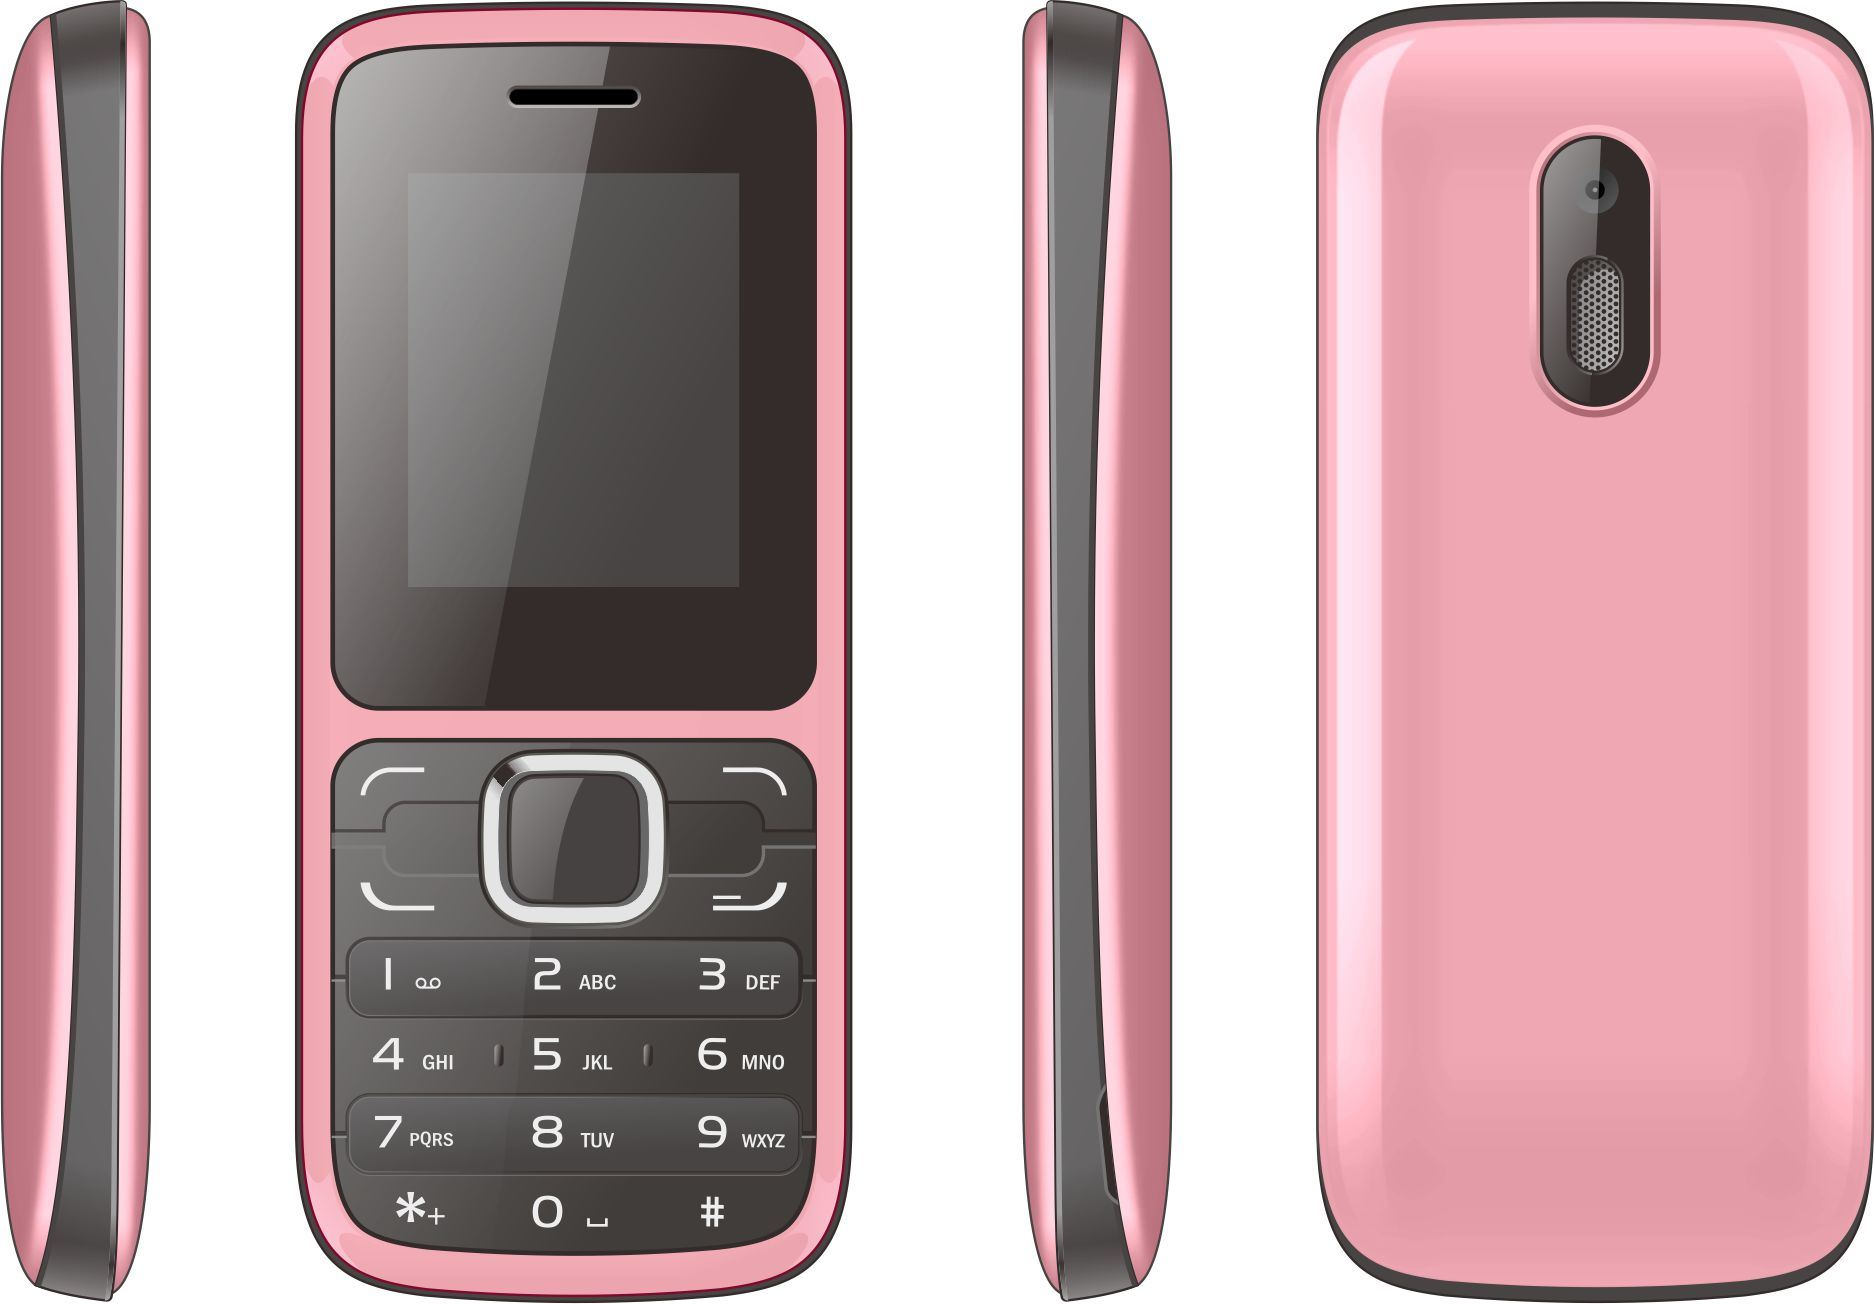 OEM ODM 1.8 Inch Screen Dual SIM GSM Cell Phone New Type Feature Mobile Phone A22